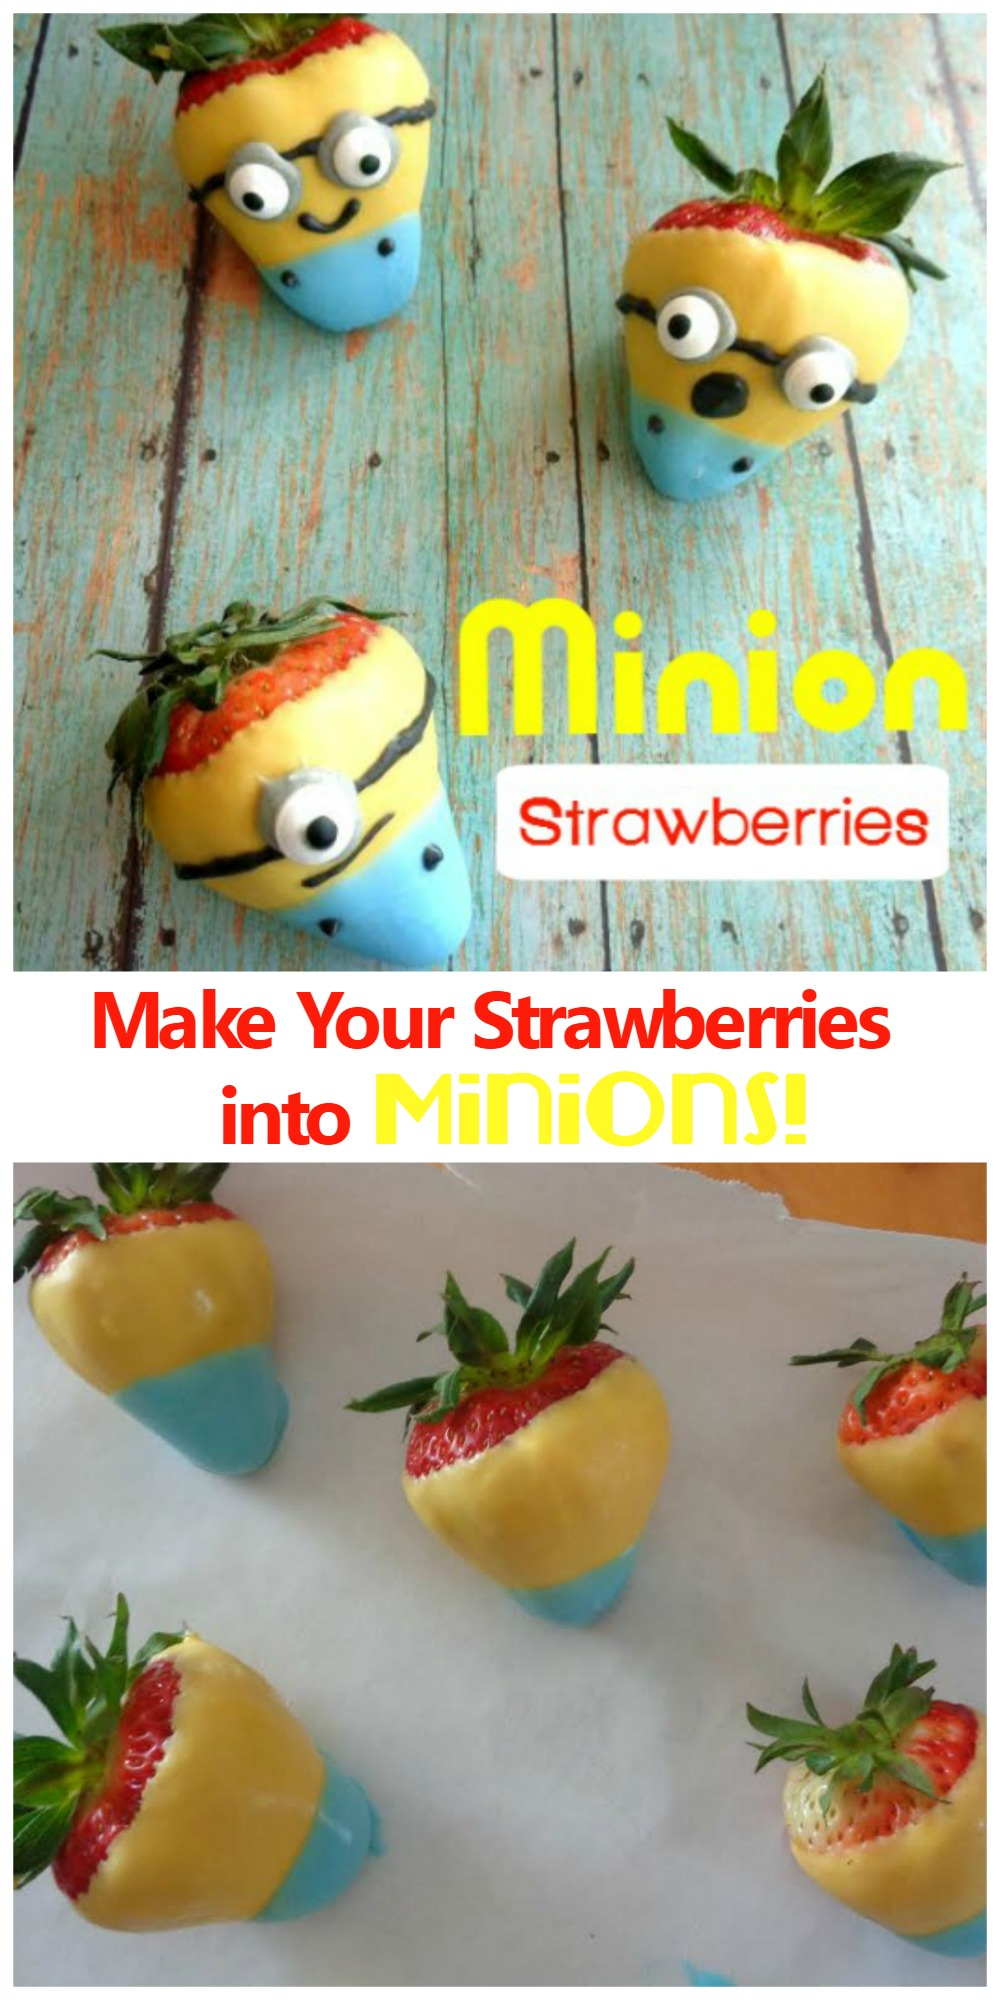 Easy Minions Snack made from melted chocolate and strawberries!